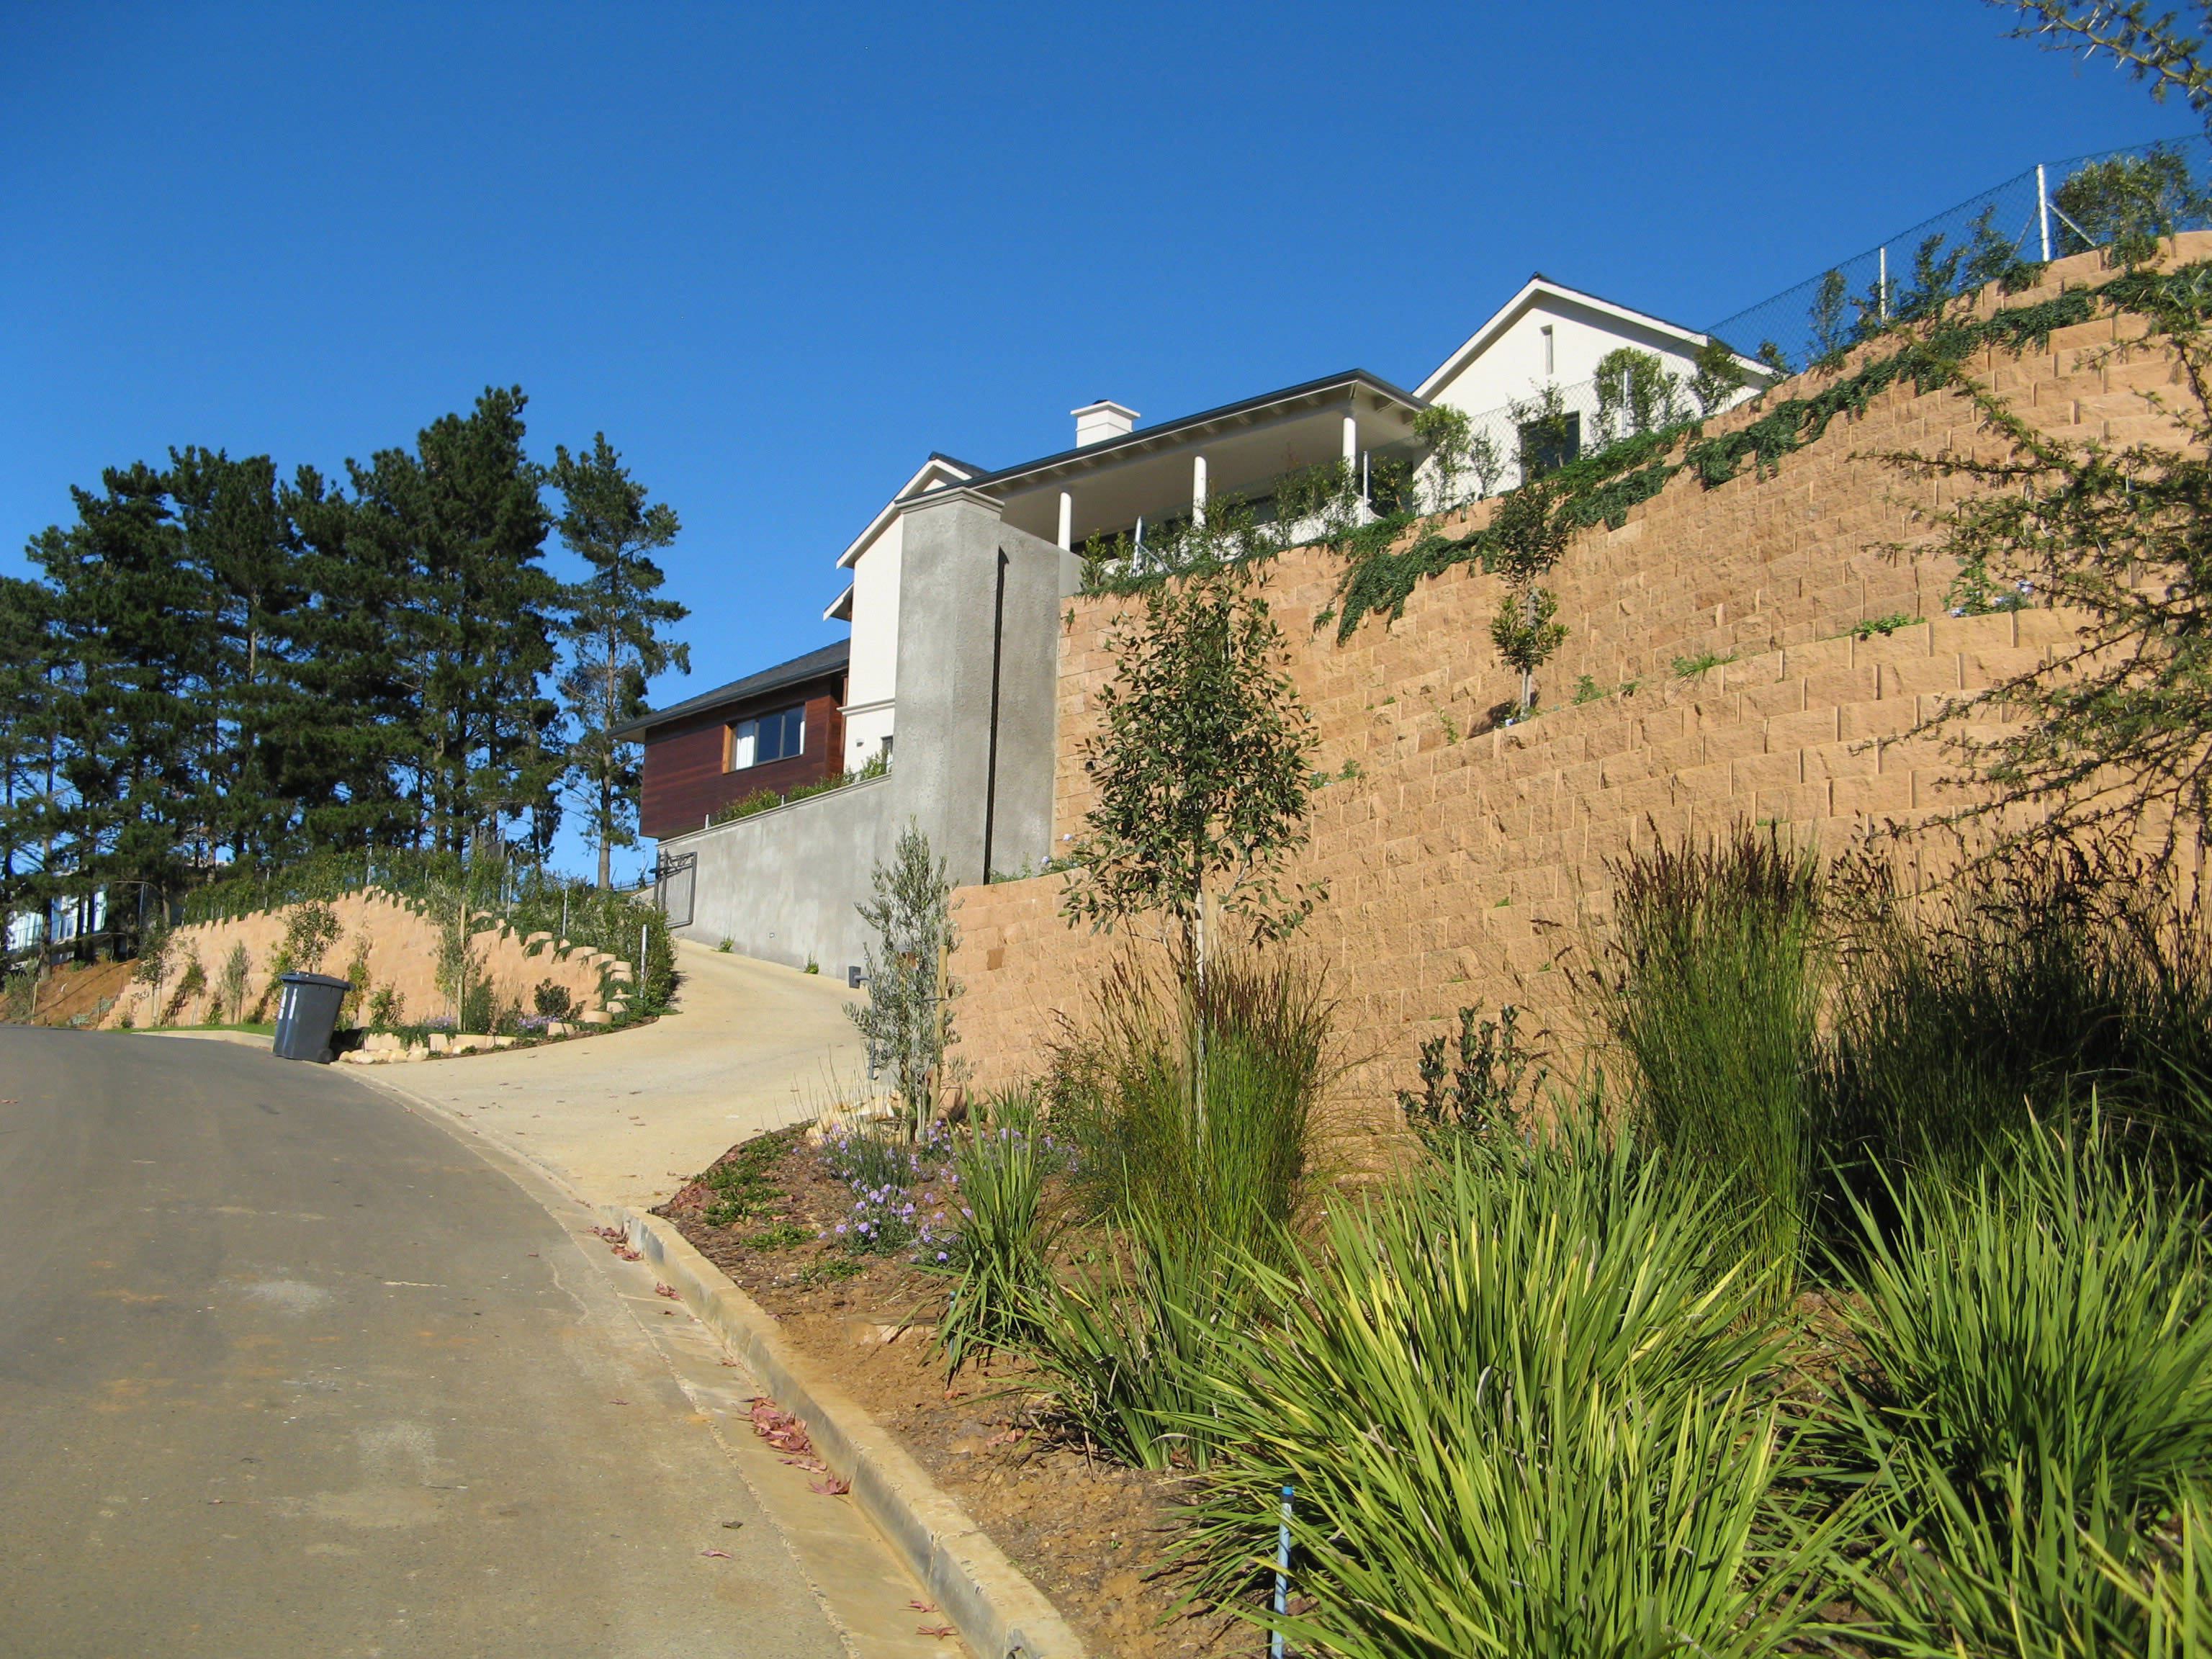 retaining wall to prevent soil erosion, here seen along the drive way